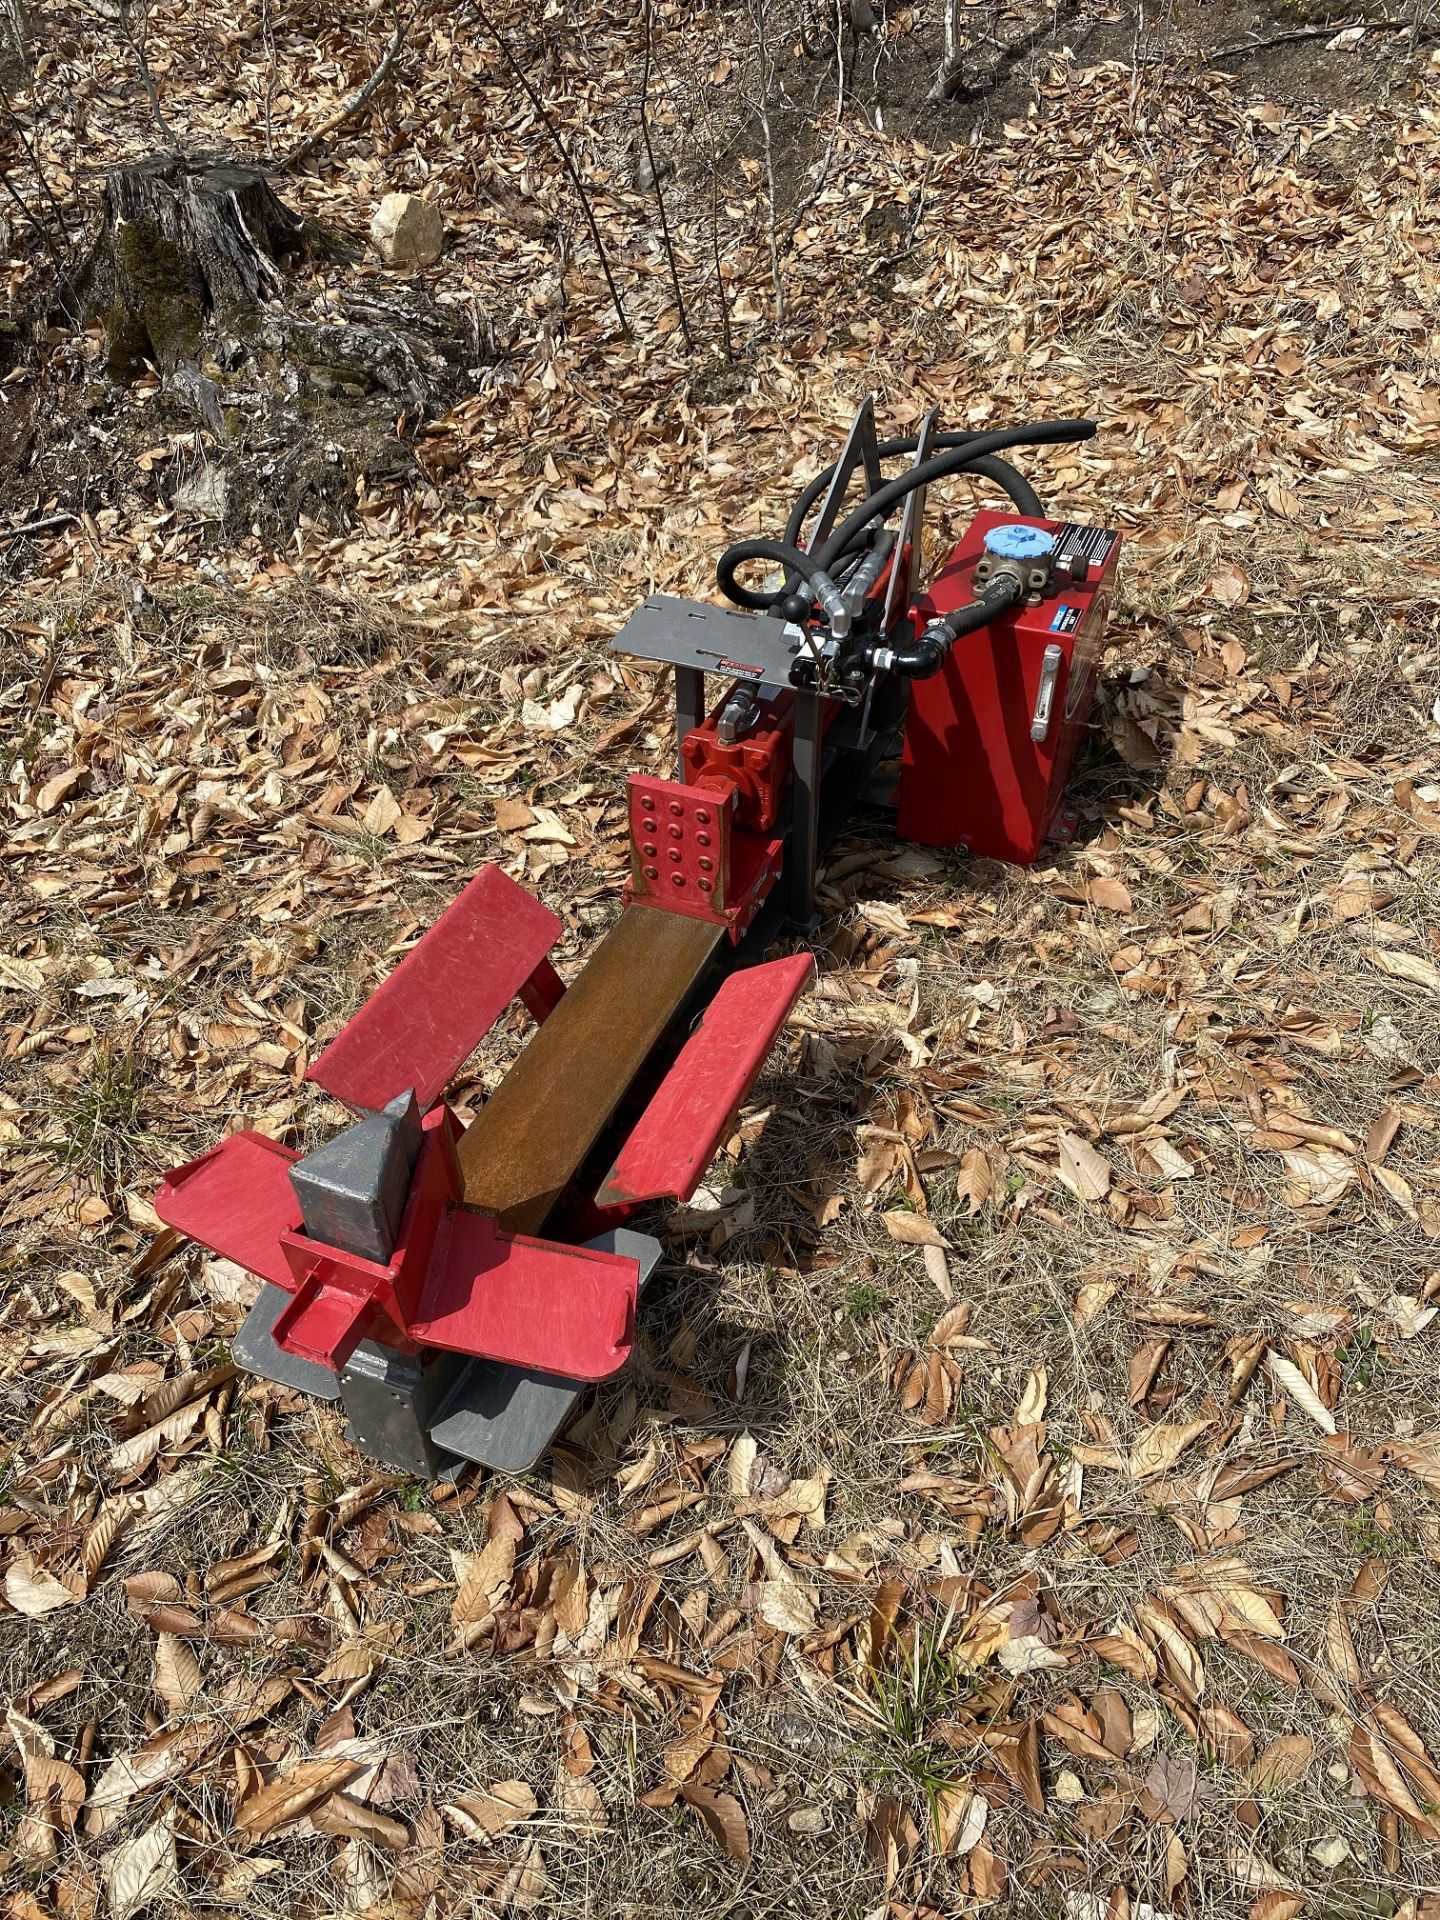 Timber Wolf Log Splitter w/Prince Attachment. 3000 PSI, Bore 5, 3 Part Attachment, 23 Stroke, - Image 2 of 4